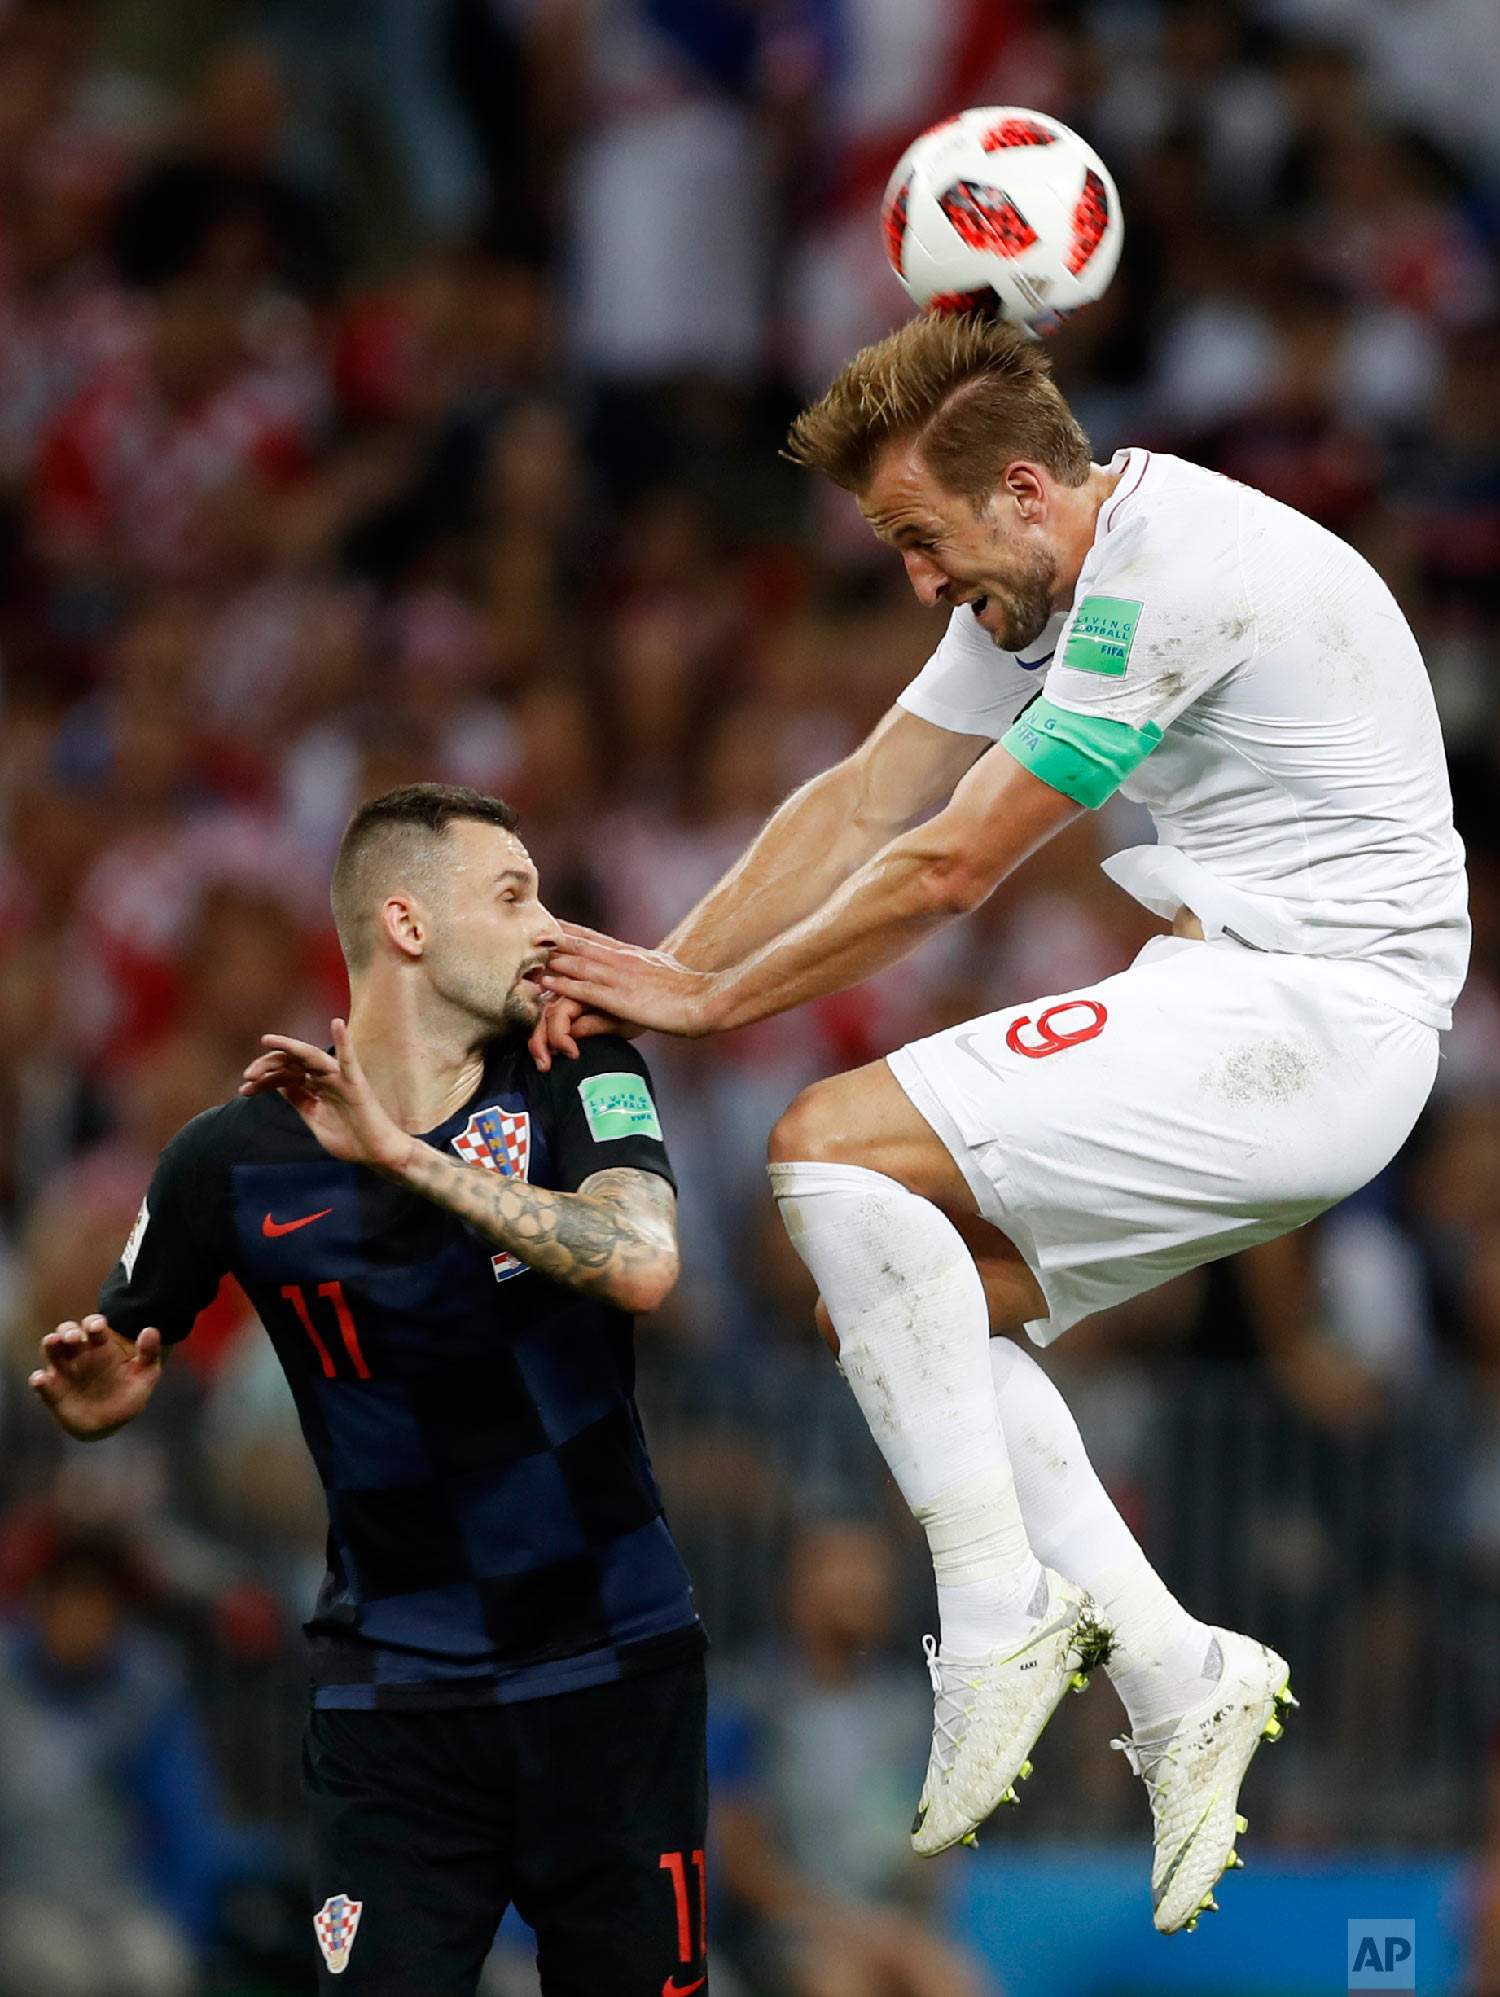 England's Harry Kane, right, challenges for the ball Croatia's Marcelo Brozovic, left, during the semifinal match between Croatia and England at the 2018 soccer World Cup in the Luzhniki Stadium in Moscow, Russia, Wednesday, July 11, 2018. (AP Photo/Francisco Seco)